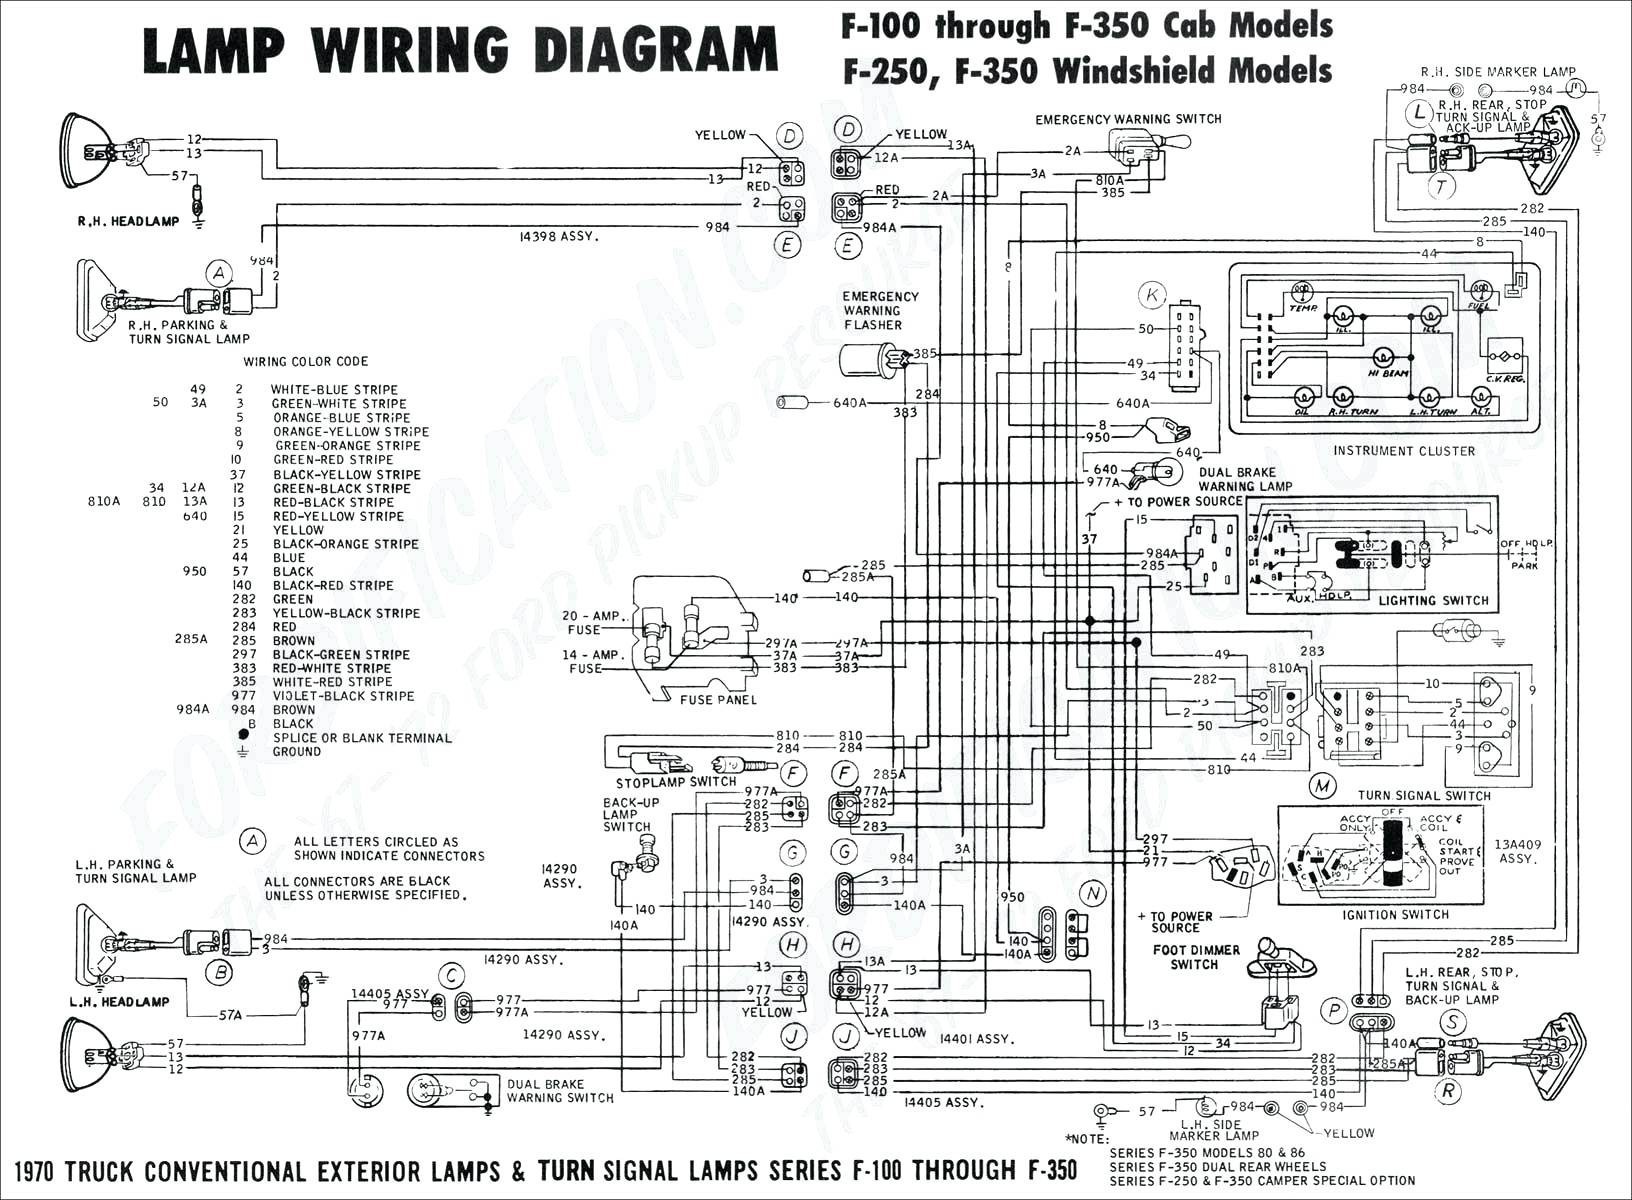 1997 Chevy Silverado Tail Light Wiring Diagram 94 Ranger ... on